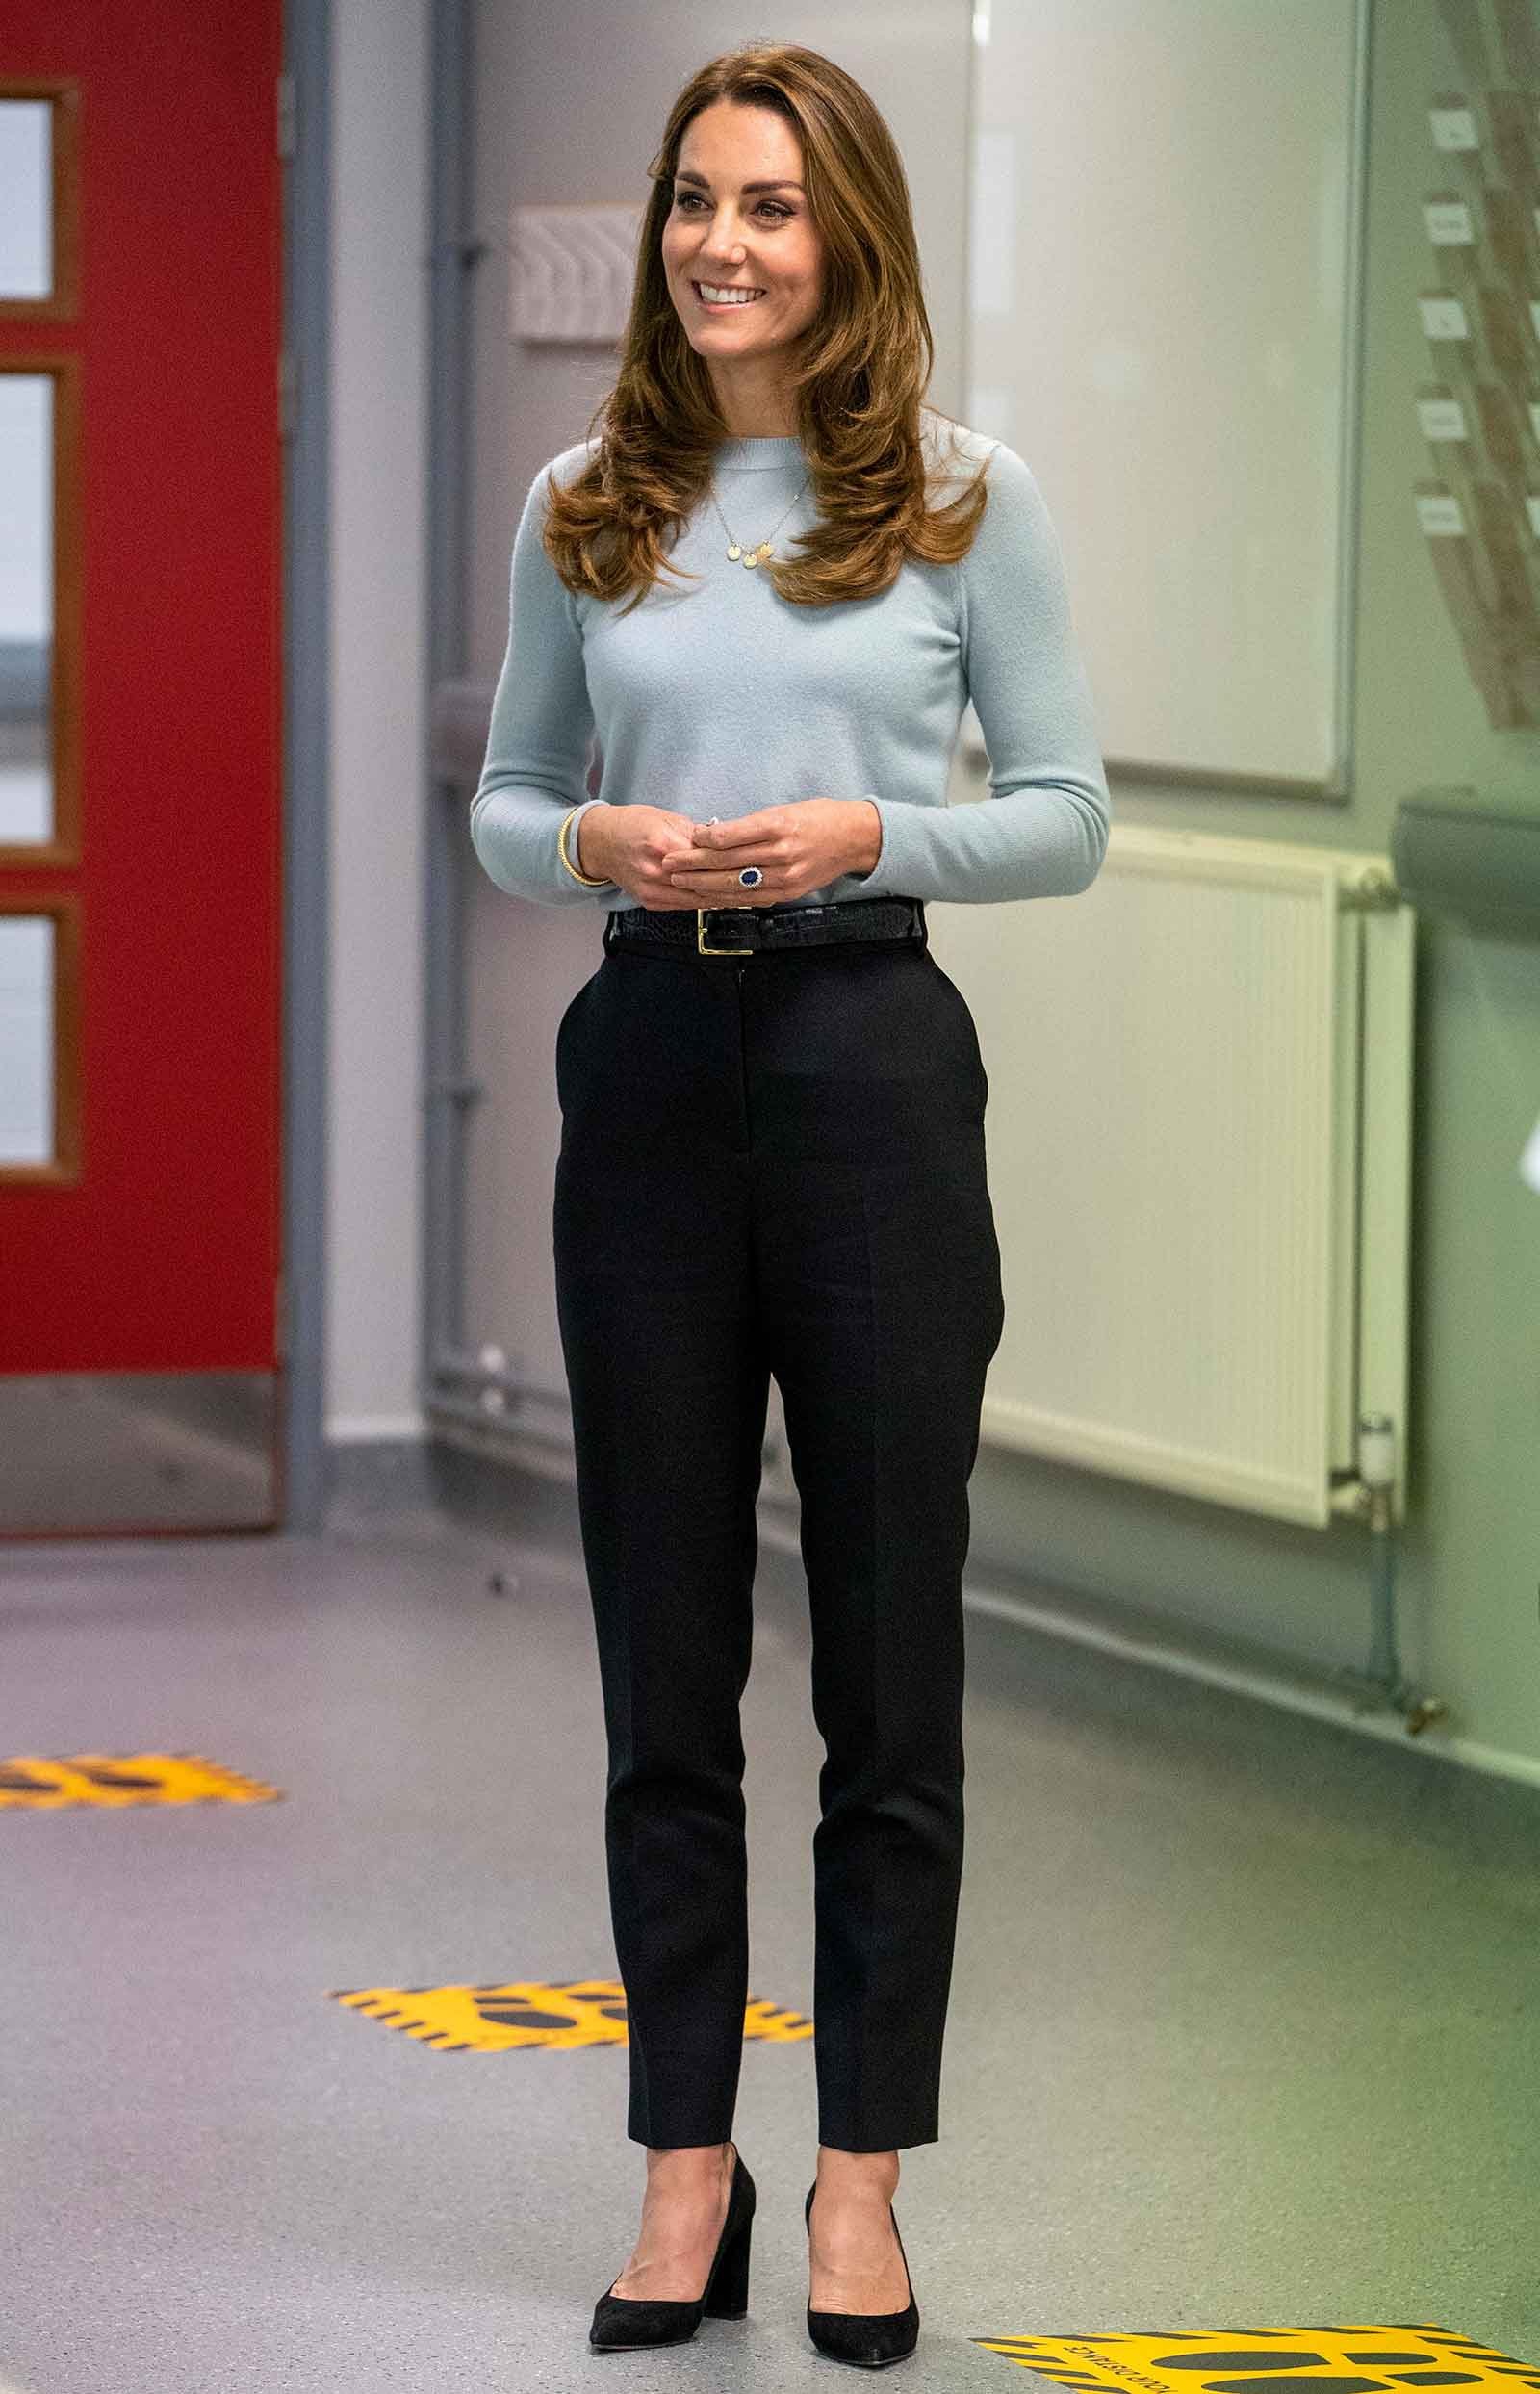 Kate Middleton fashion inspiration, business casual outfit idea for fall